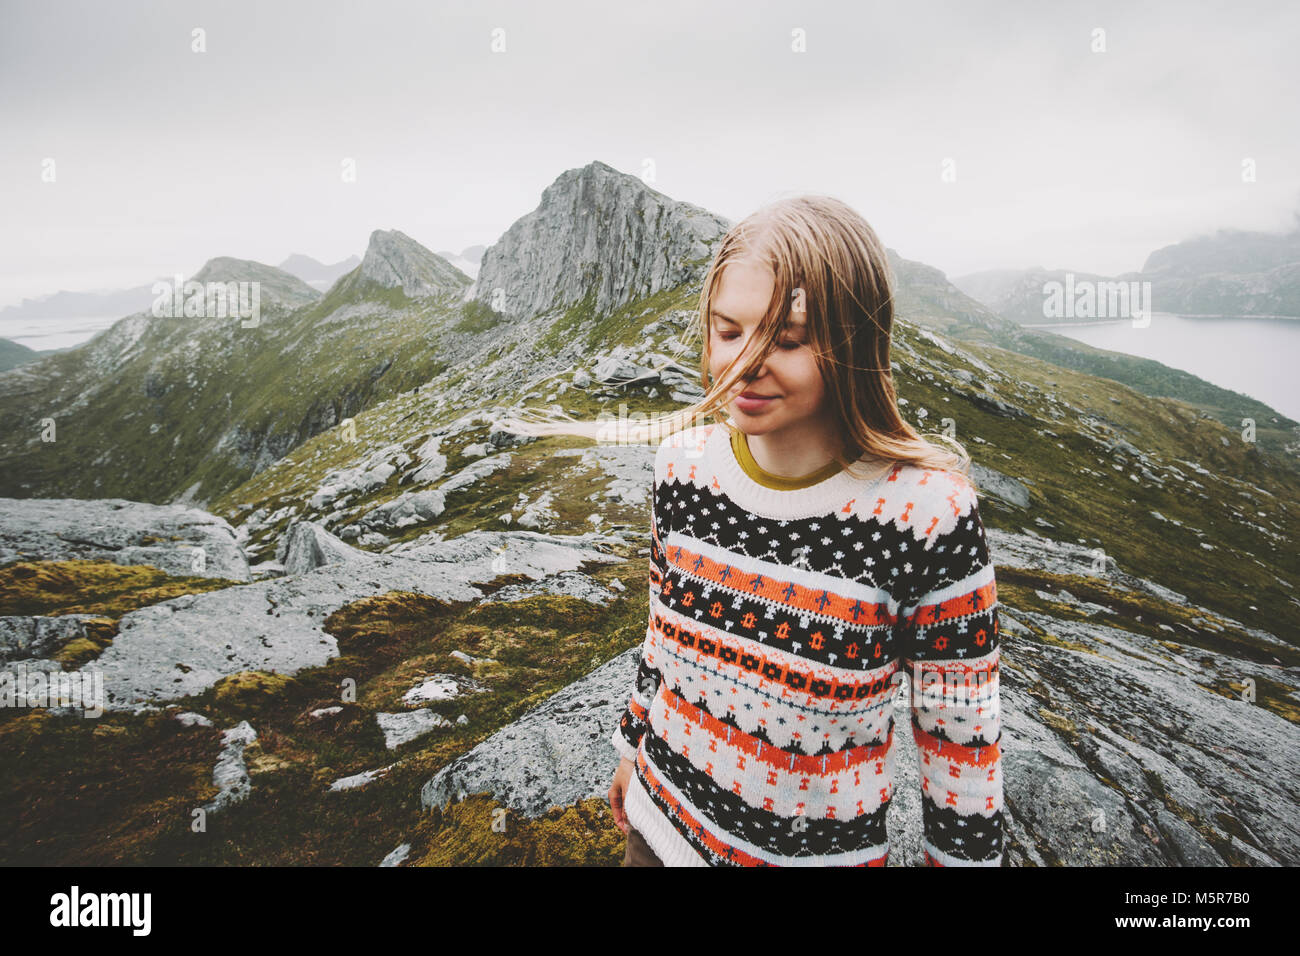 Young blonde woman walking in Norway mountains Travel concept émotionnel de vie en plein air d'aventure Photo Stock